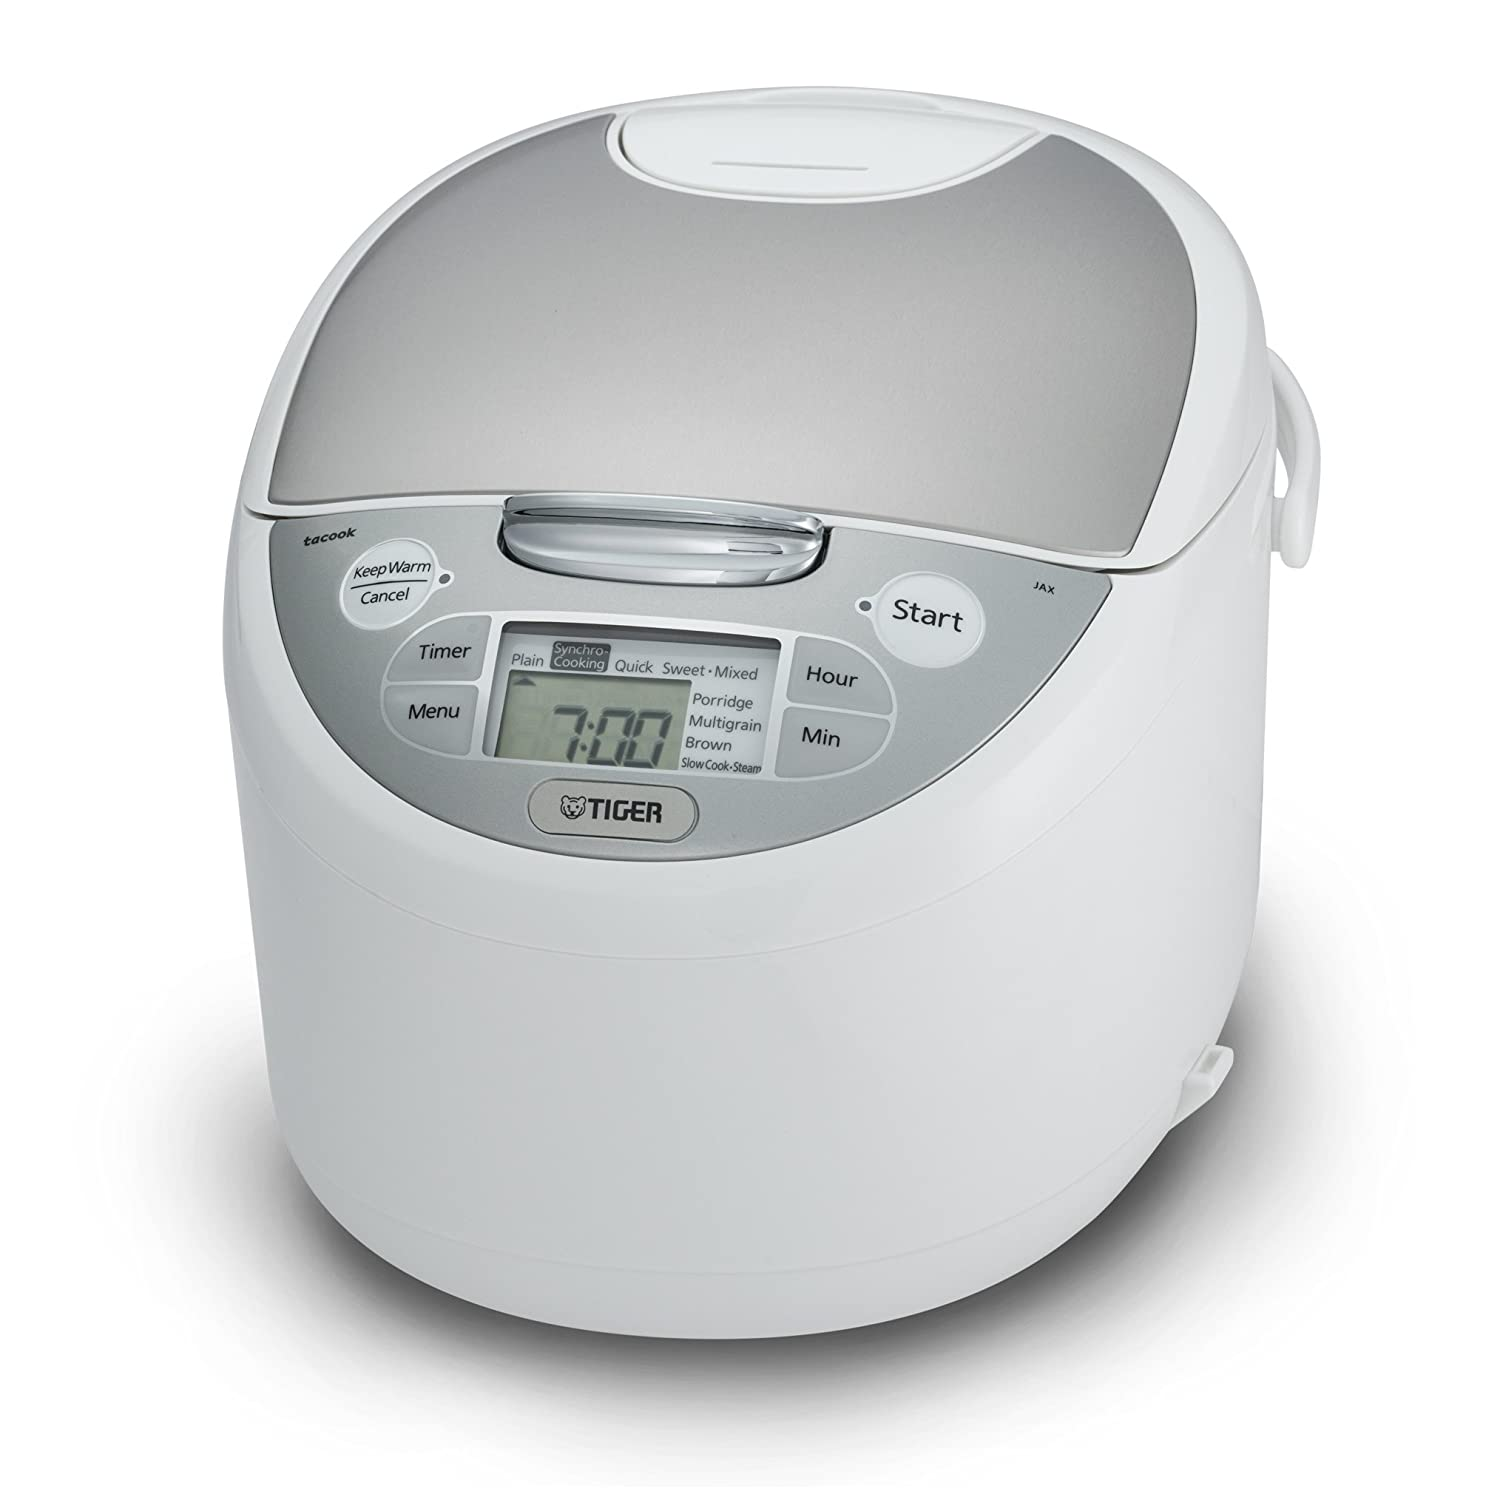 Tiger JAX-S18U-WY 10-Cup (Uncooked) Micom Rice Cooker & Warmer, Steamer, and Slow Cooker